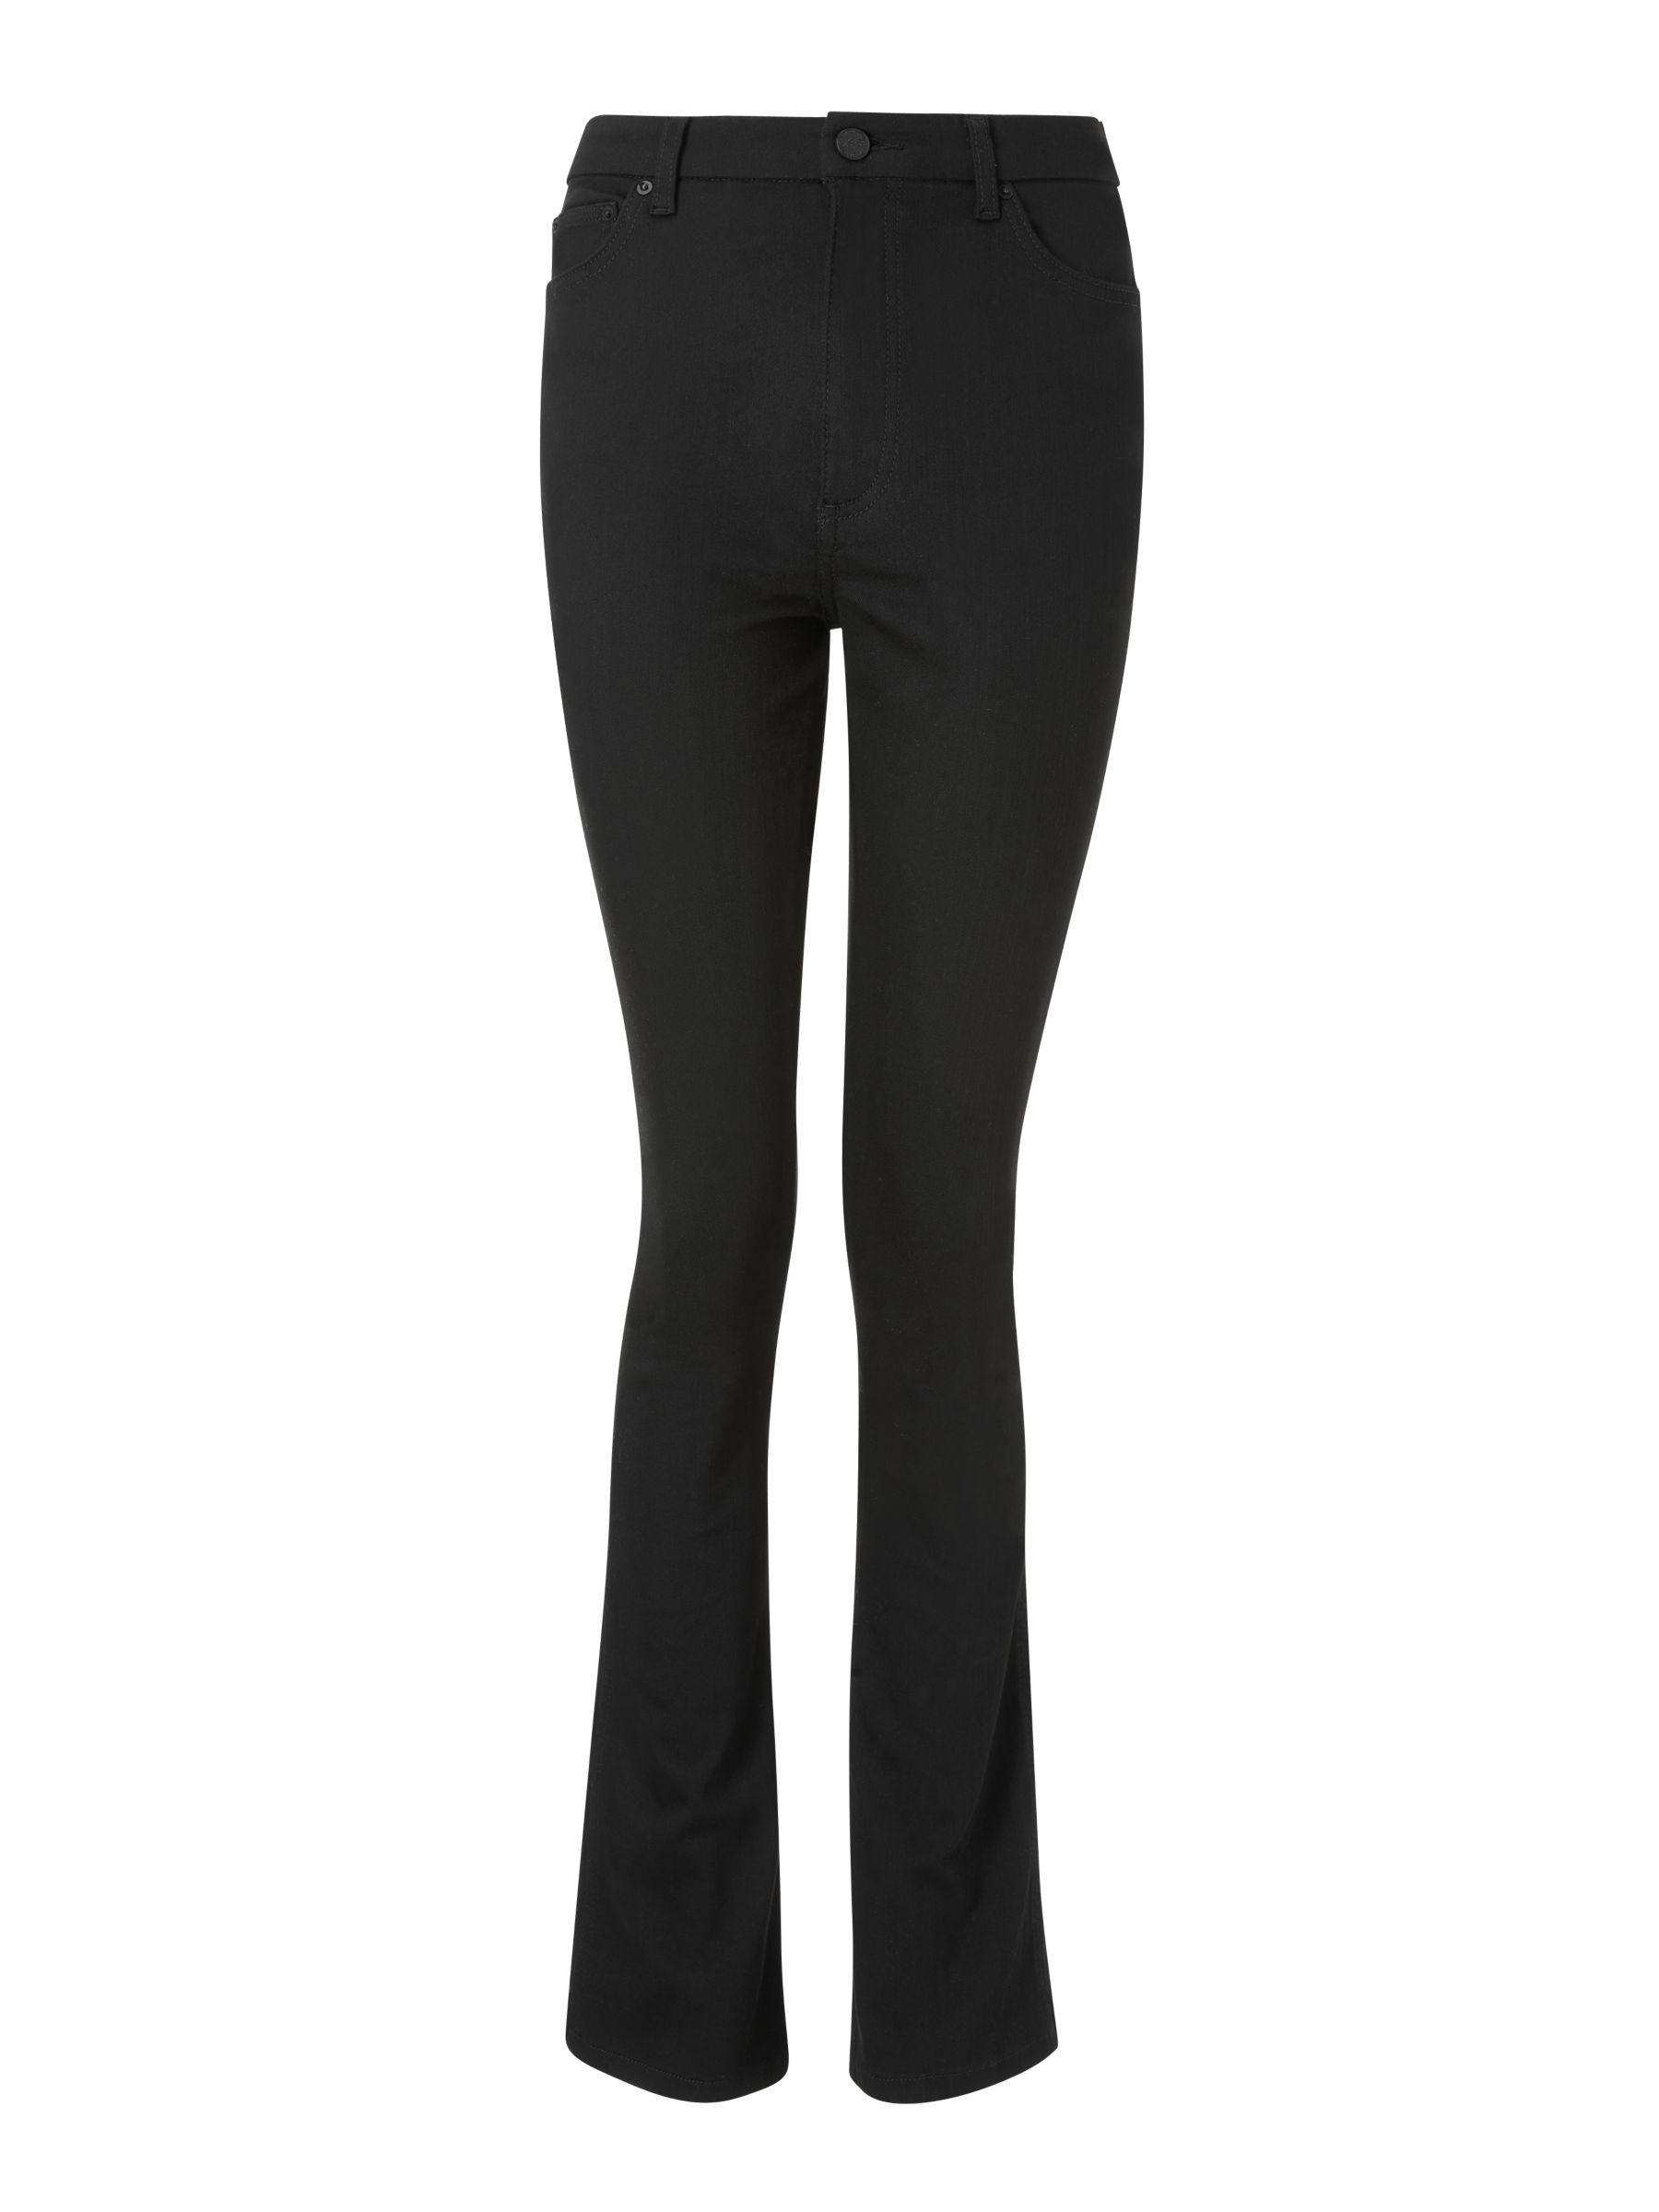 Buy AND/OR Malibu Mini Bootcut Jeans, Black, 26 Online at johnlewis.com